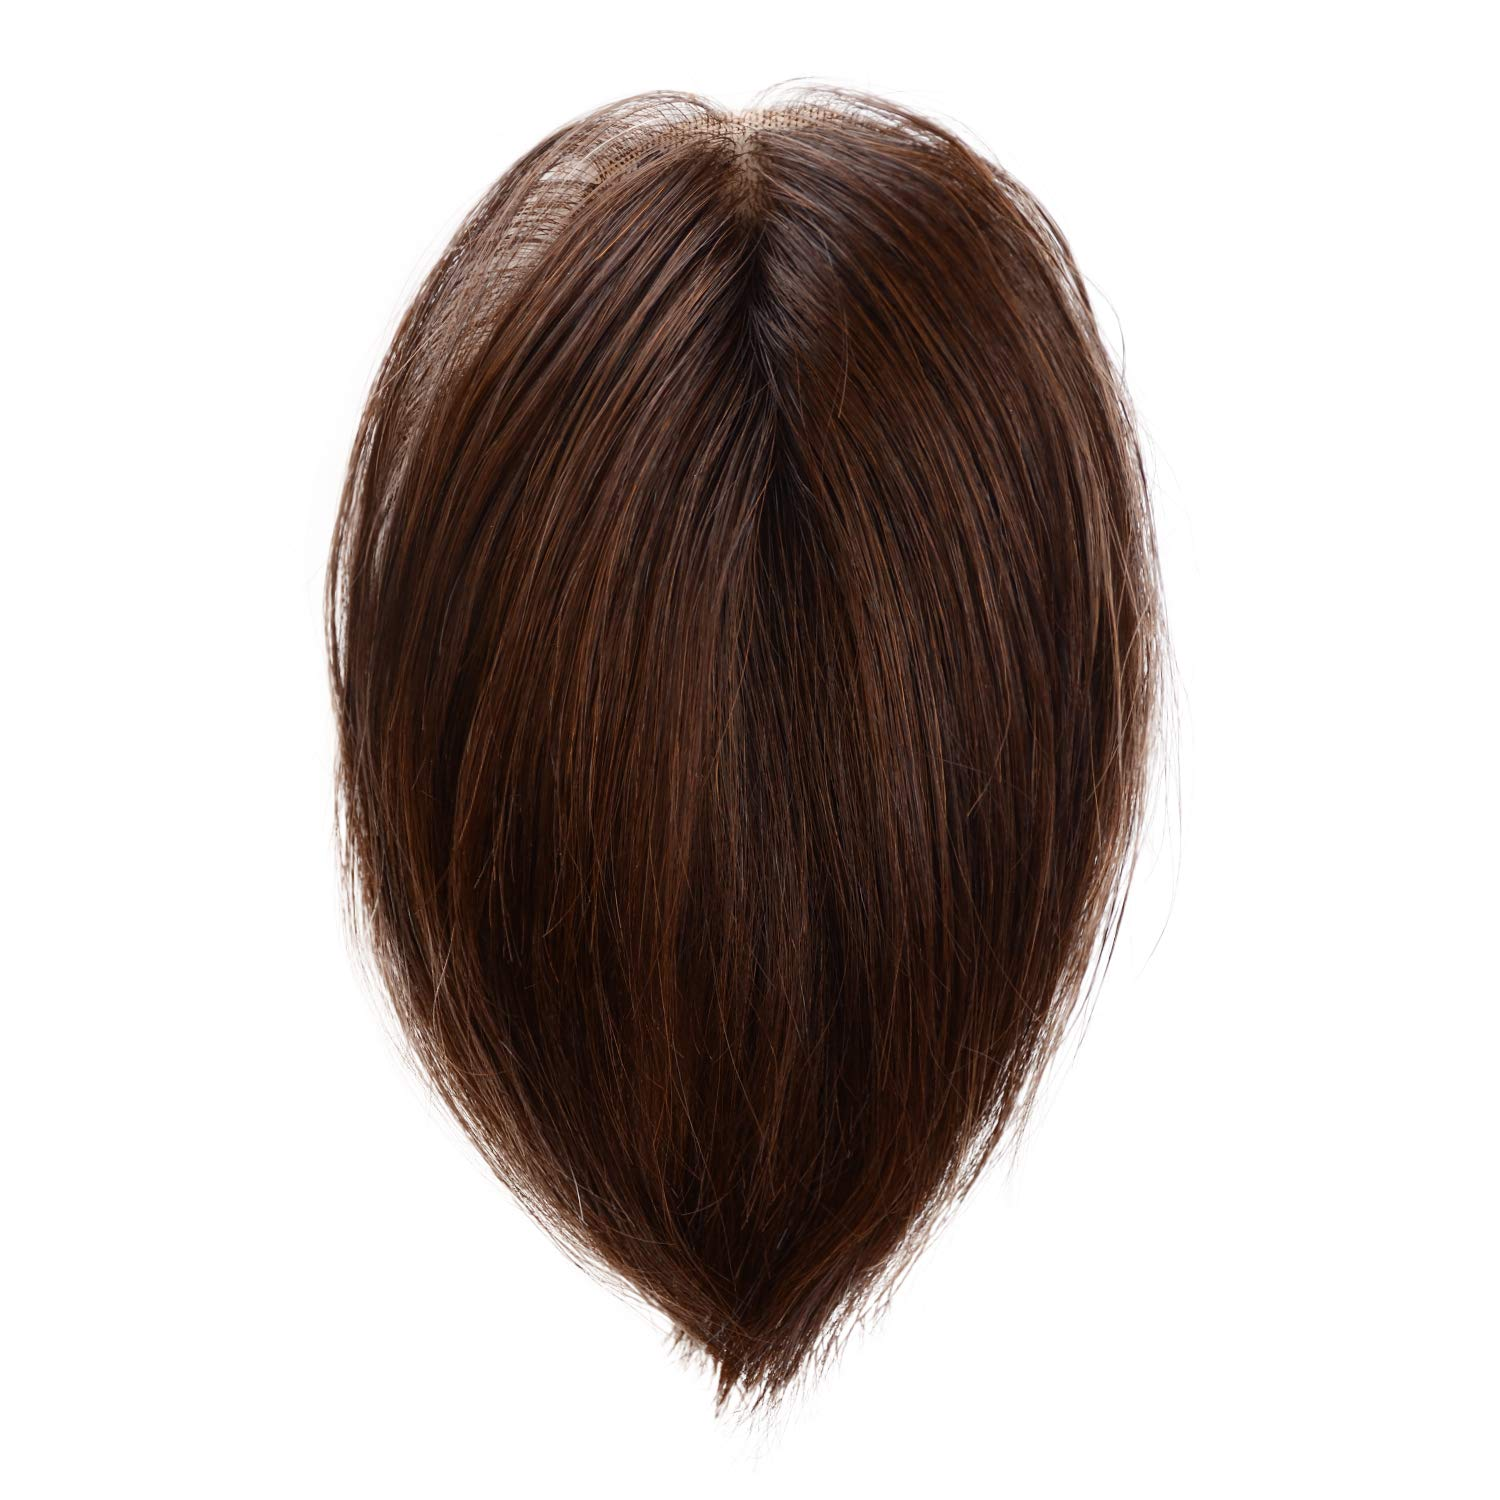 BARSDAR Real Human Hair Toppers for Women Silk Base Top Hairpiece Replacement Straight Toupee for Women Top Piece Short 6''/6 inch (4# Dark Brown)